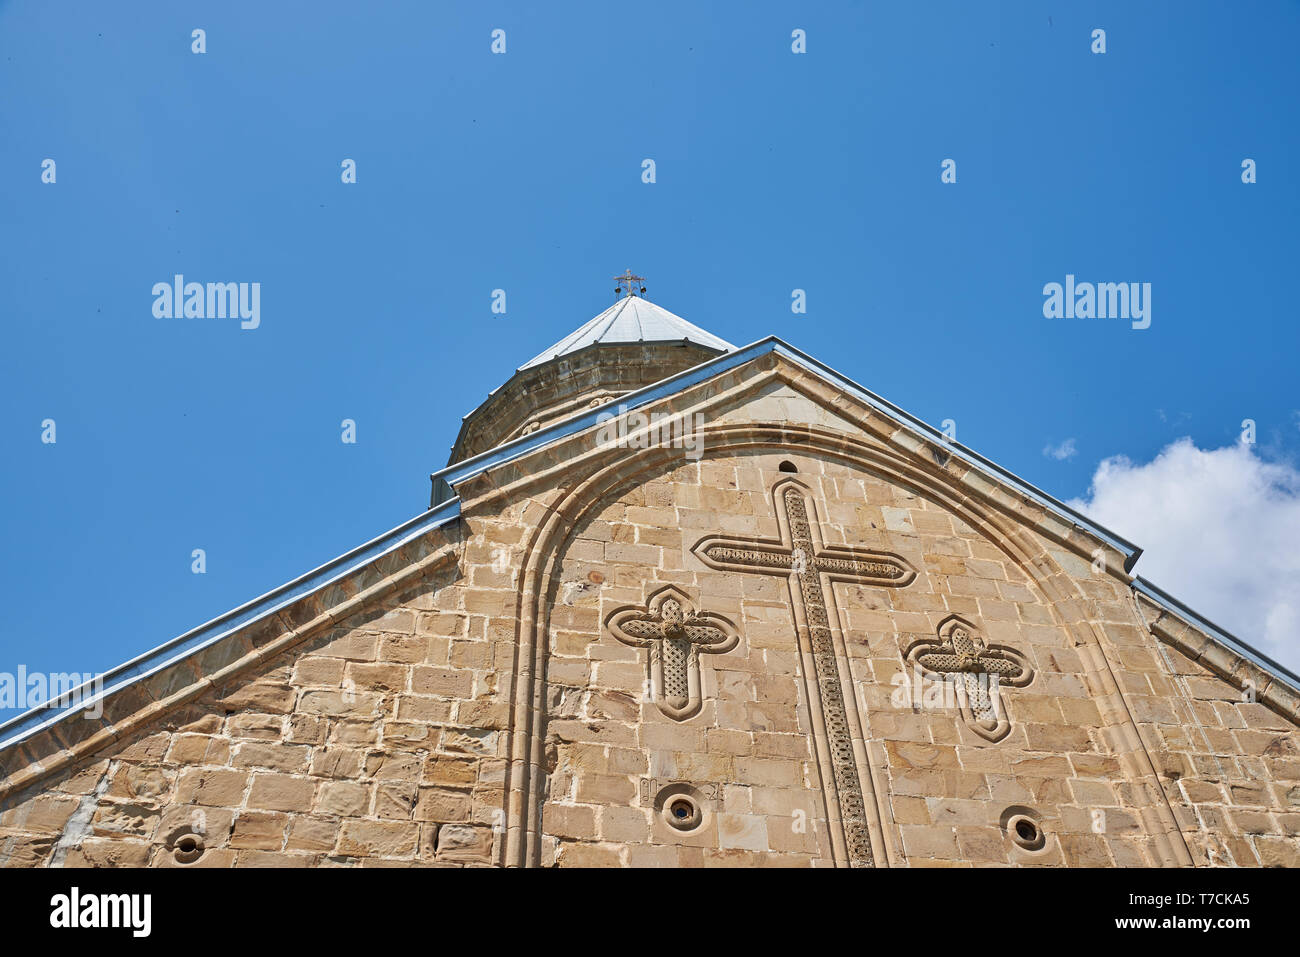 The church is a part of Ananuri castle complex built on the right bank of Aragvi River in 16th-17th century. - Stock Image